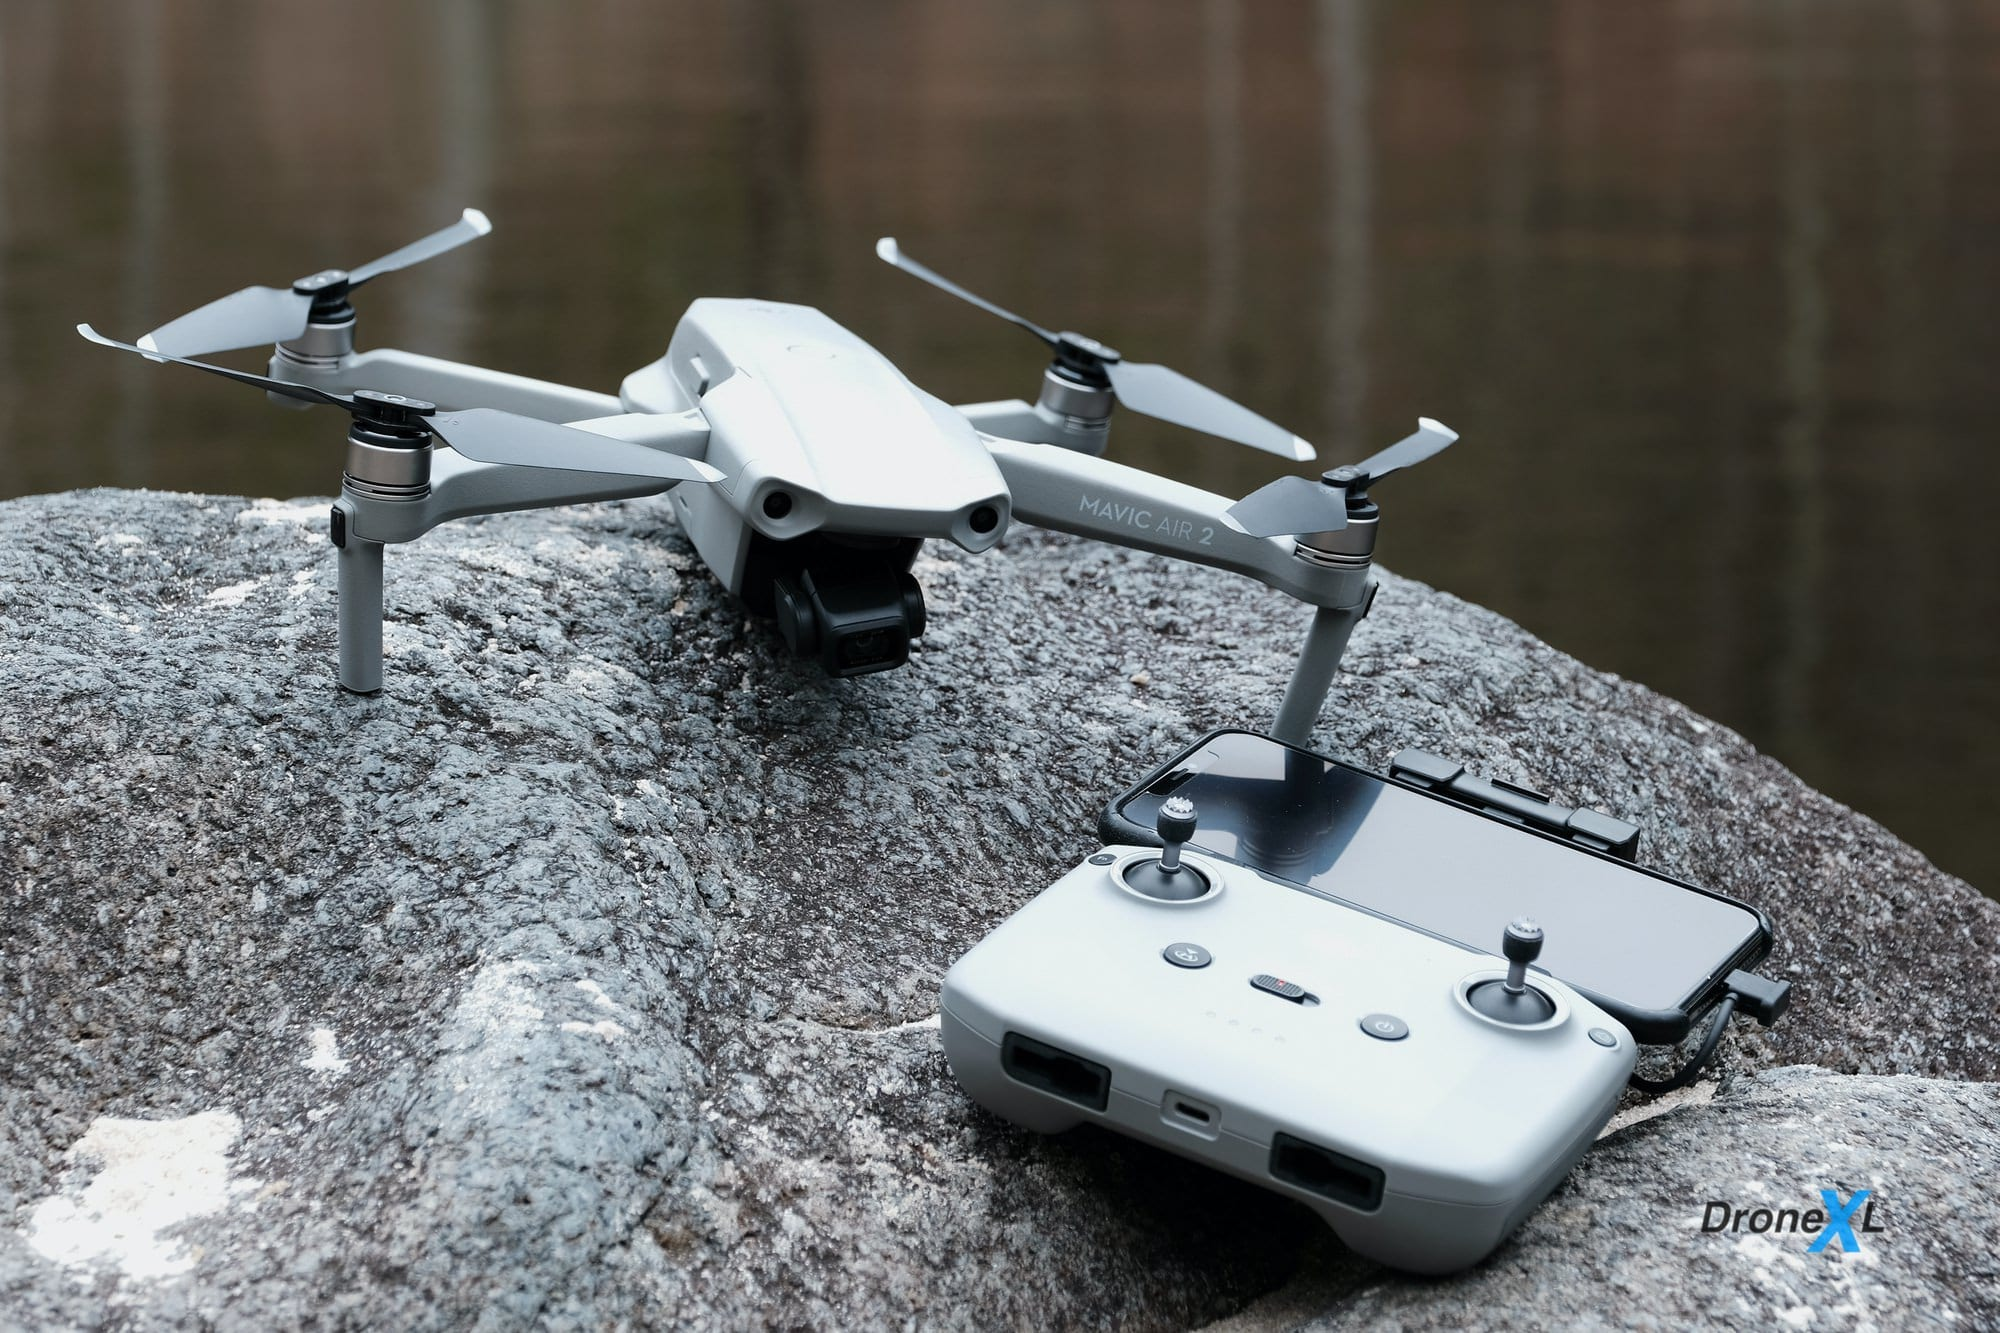 First impressions Mavic Air 2. Here's what I think after flying this DJI drone for a week